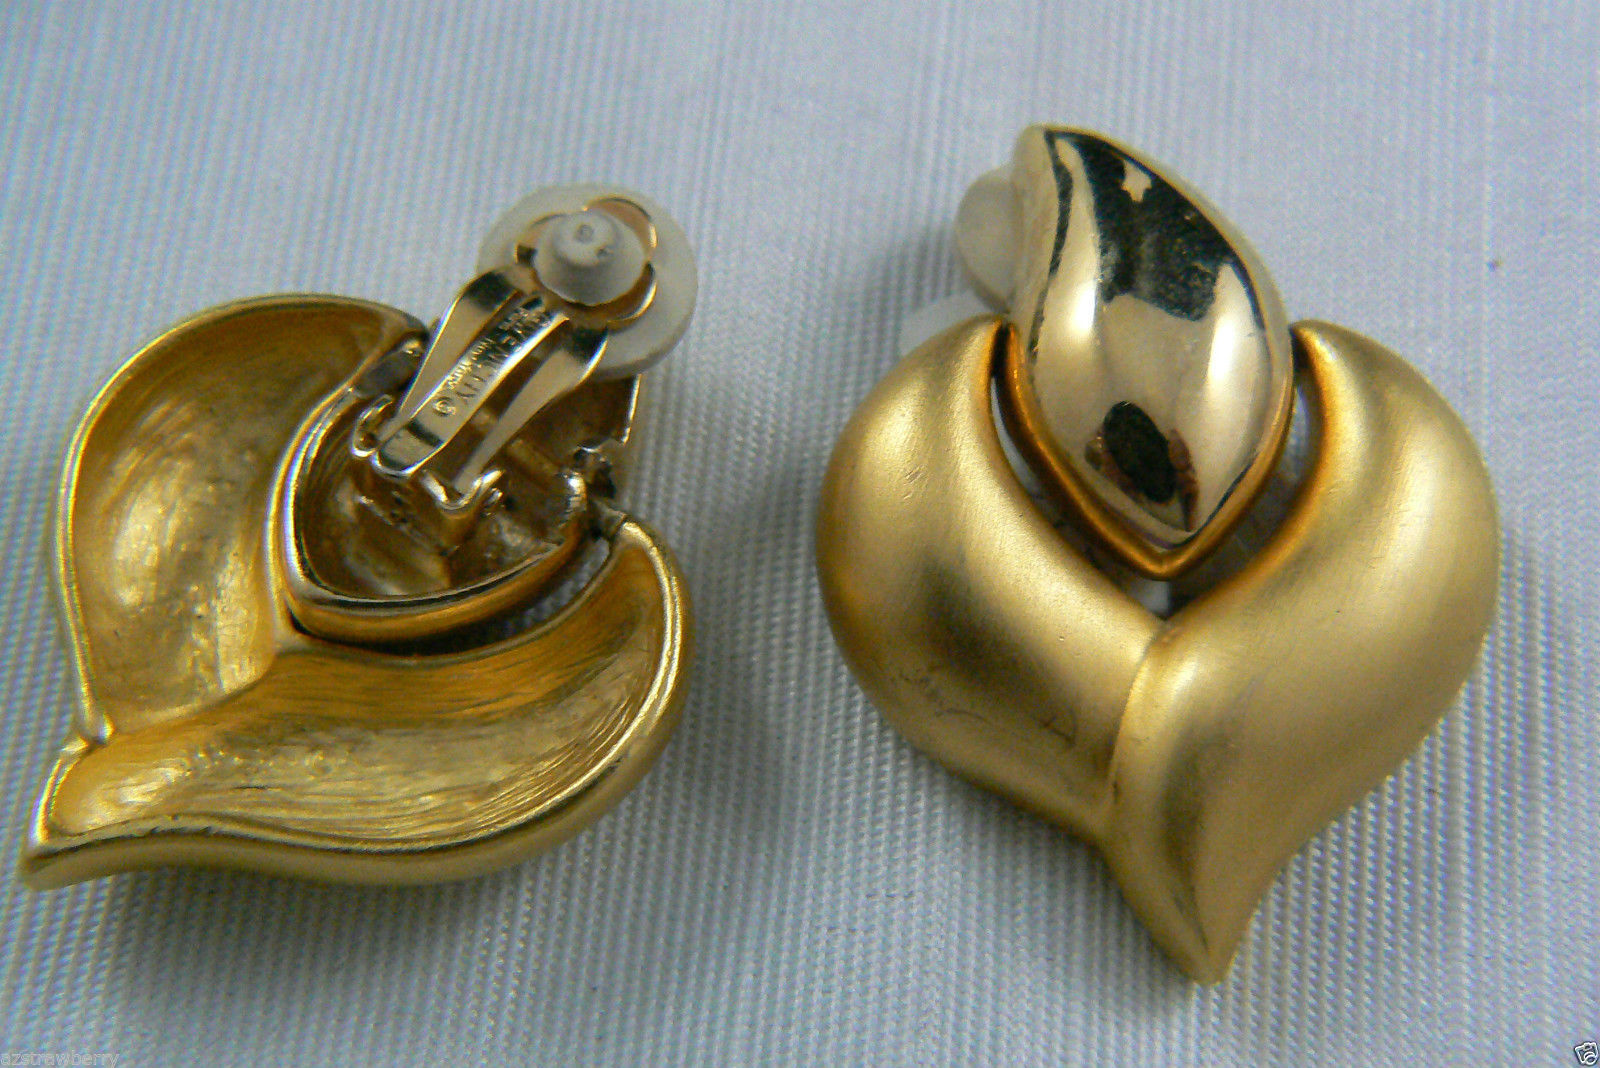 GIVENCHY PARIS NEW YORK LARGE ELEGANT GOLD TONE CLIP EARRINGS $0 SHIPPING